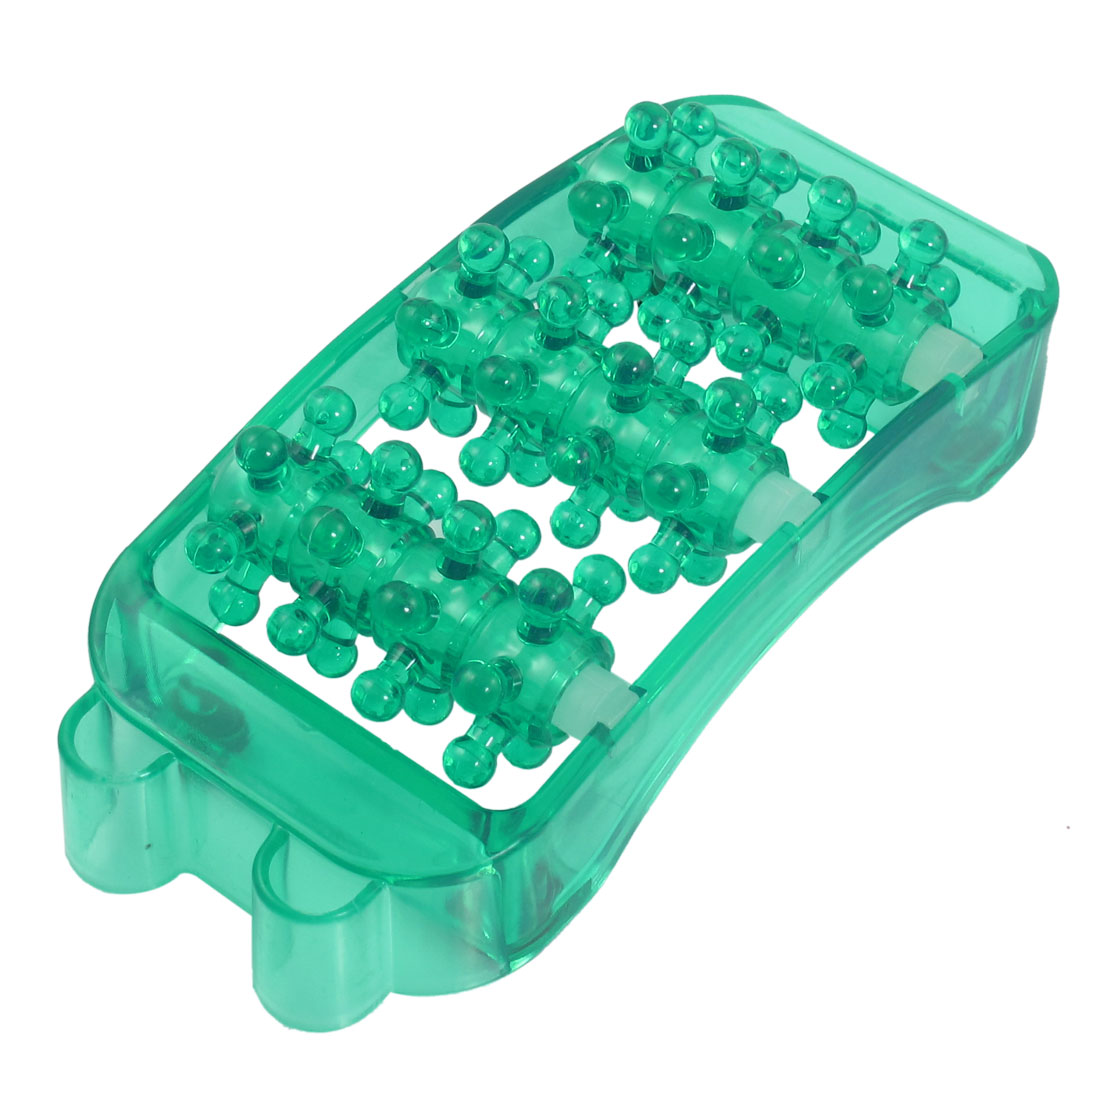 Office Home Relaxation Sole Massage Tool Roller Foot Massager Green